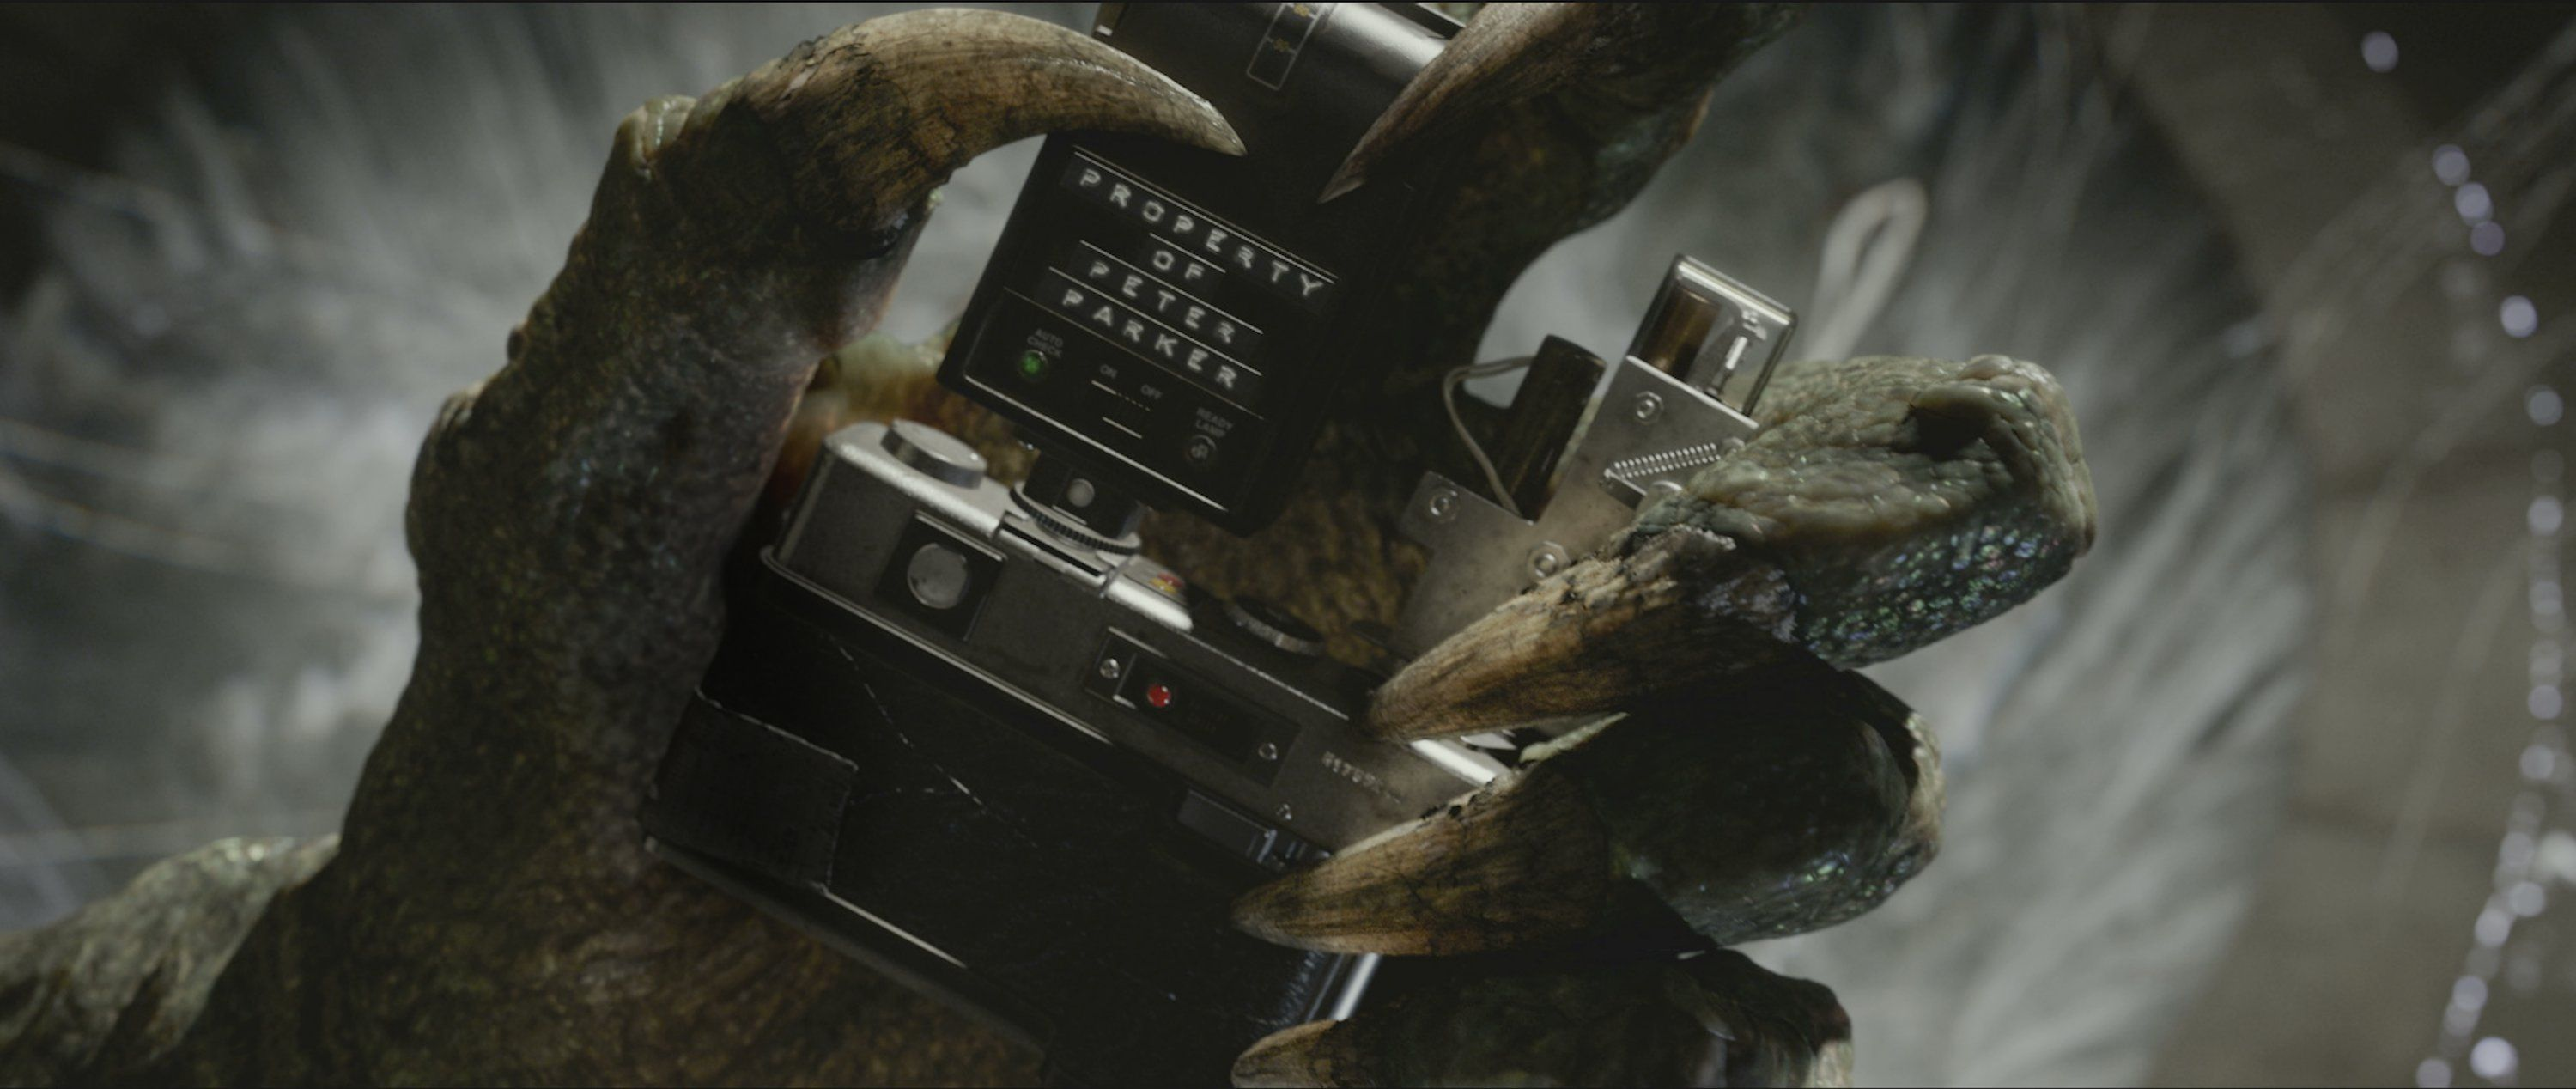 THE AMAZING SPIDER-MAN Movie Images of the Lizard | Collider